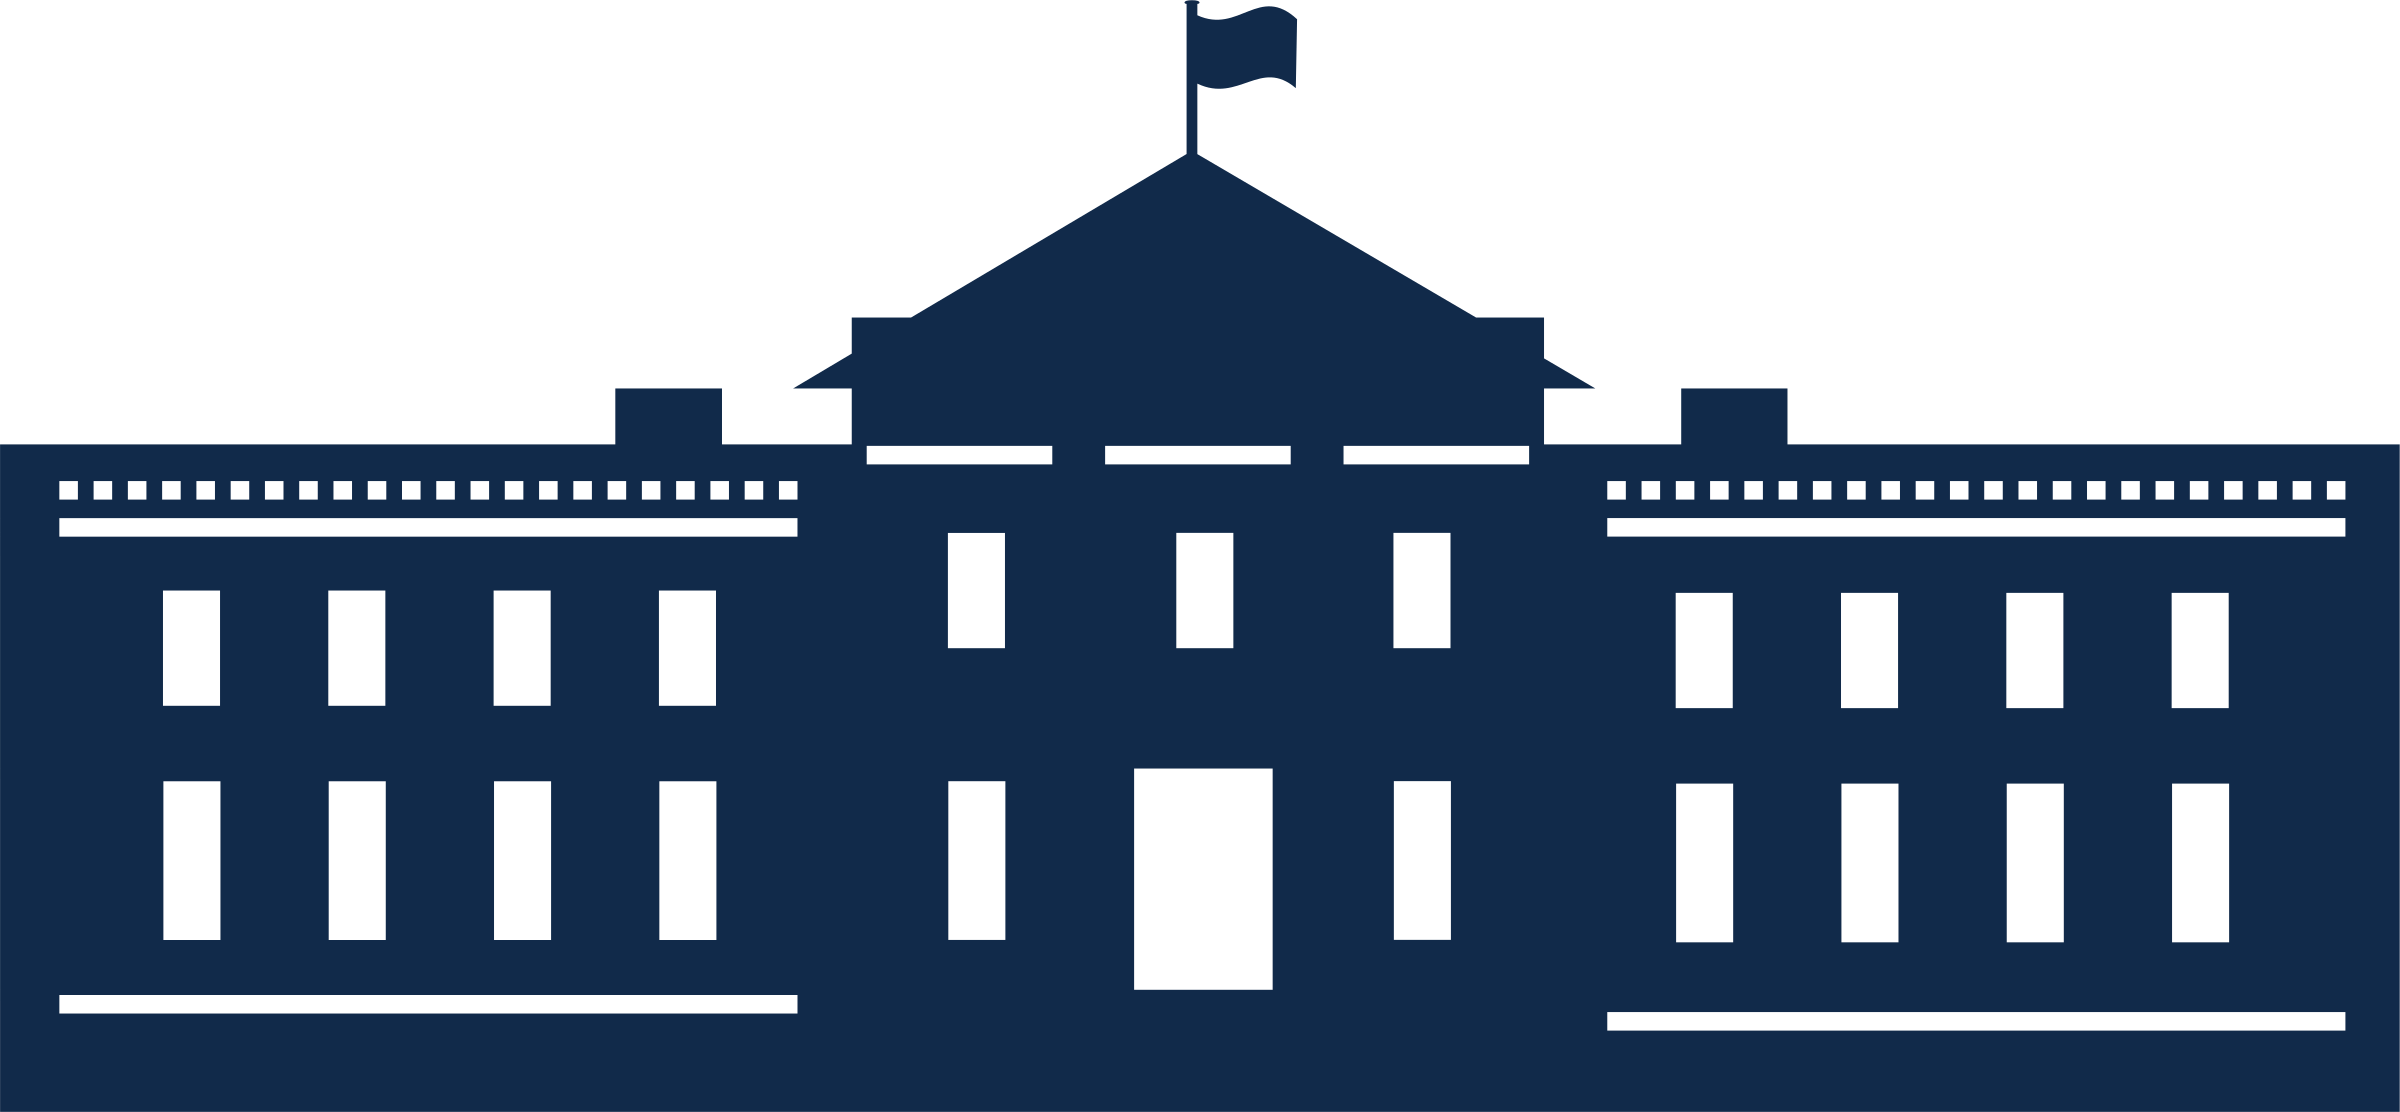 Clipart Of White House Clipground-Clipart Of White House Clipground-9